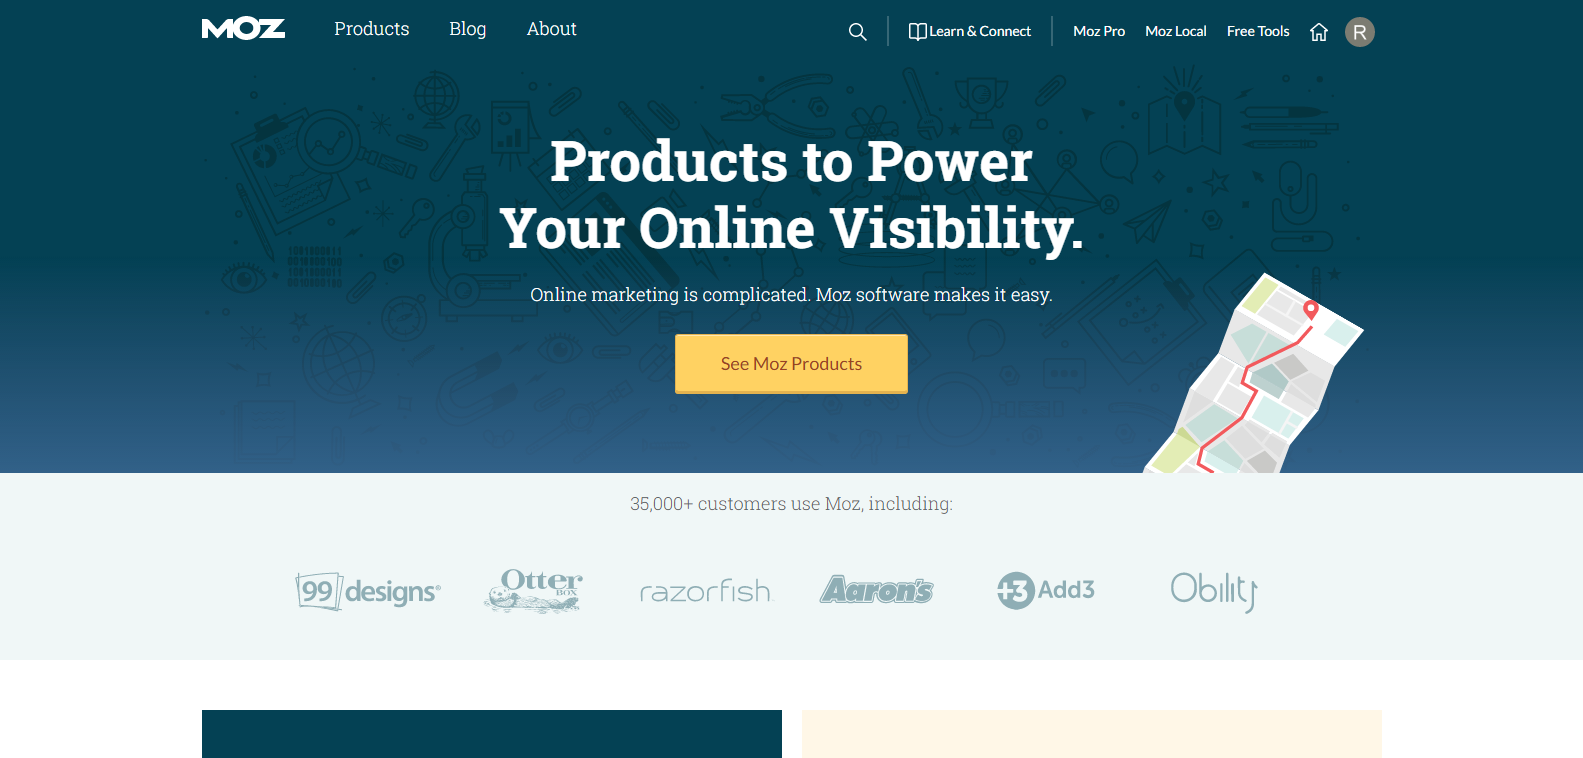 Moz SEO Software Tools and Resources for Better Marketing